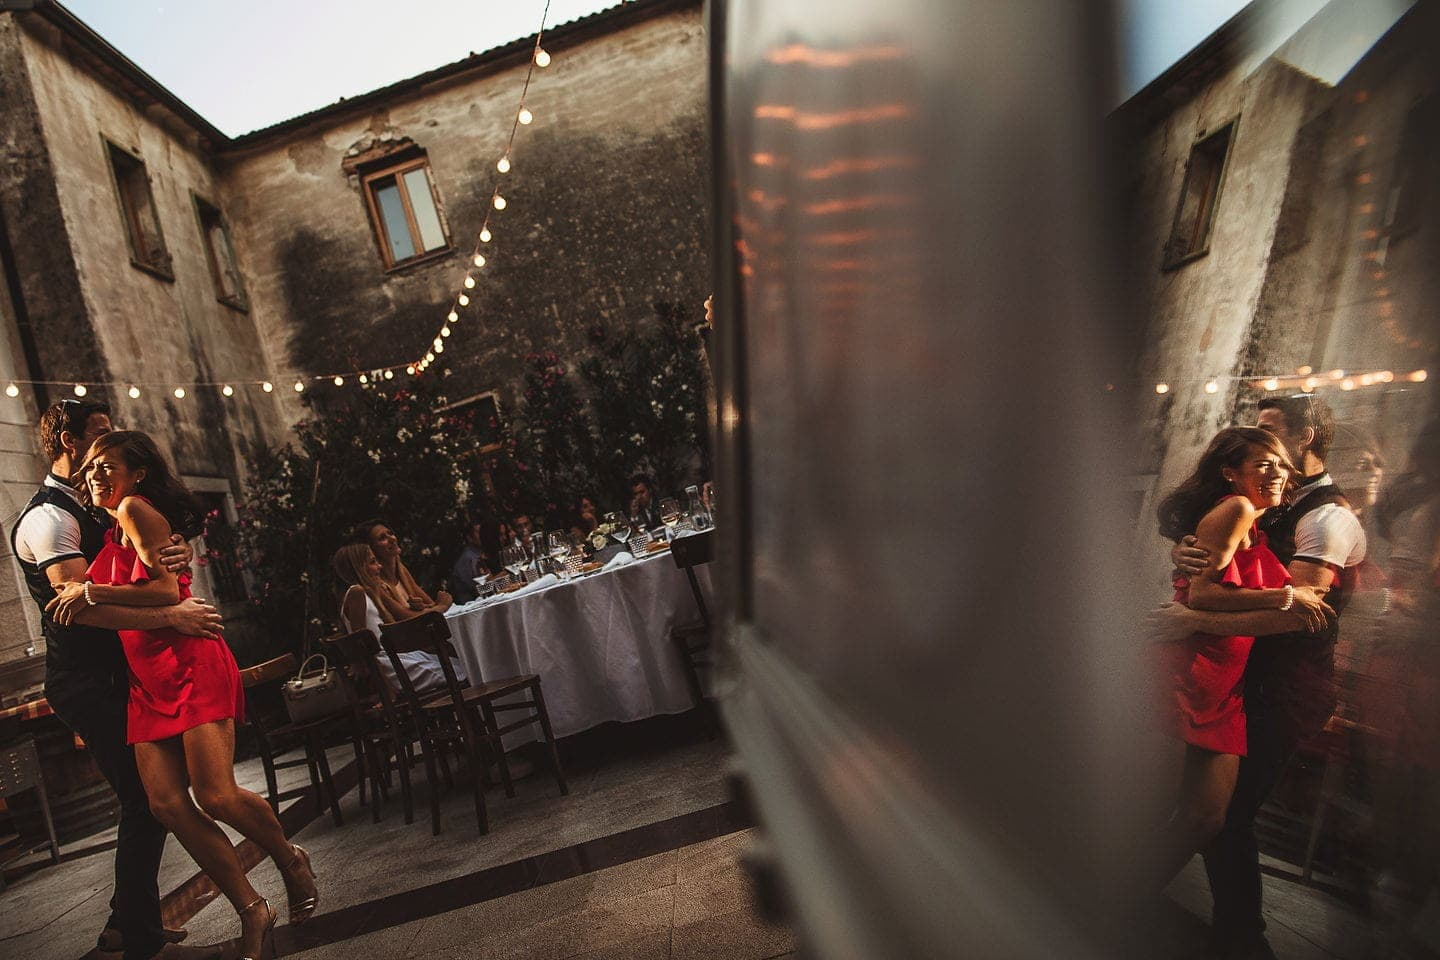 Best of wedding photography collection 2017 - by Aleks & Irena Kus 22